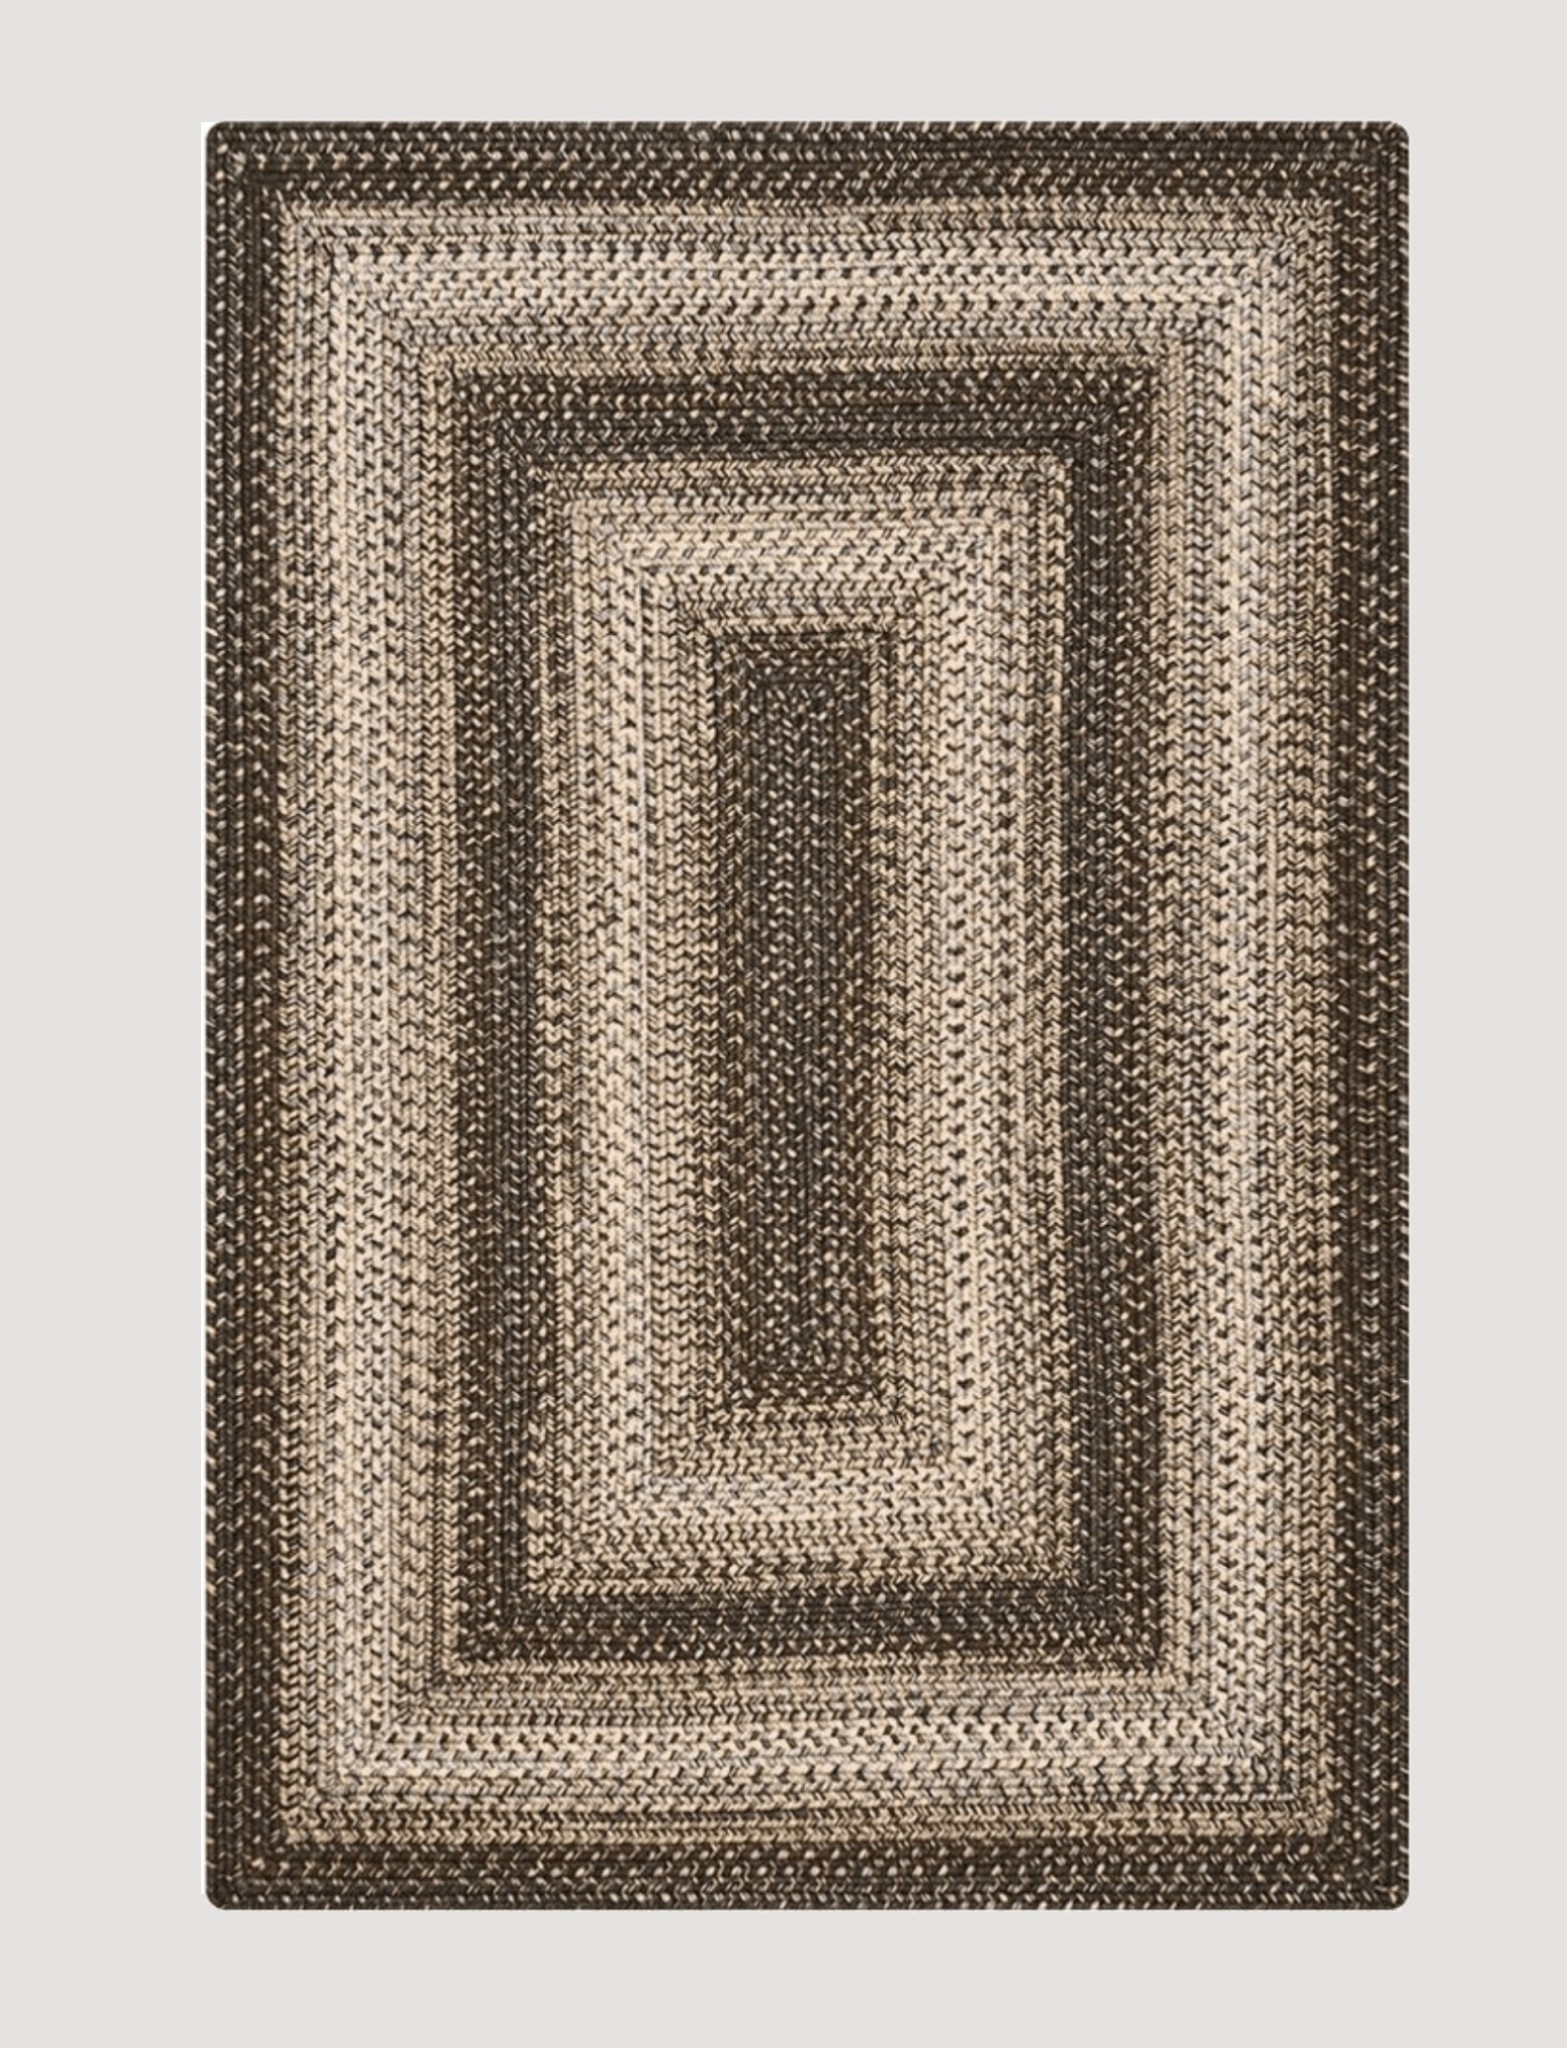 Homespice Decor Wildwood Ultra Durable Braided Rug